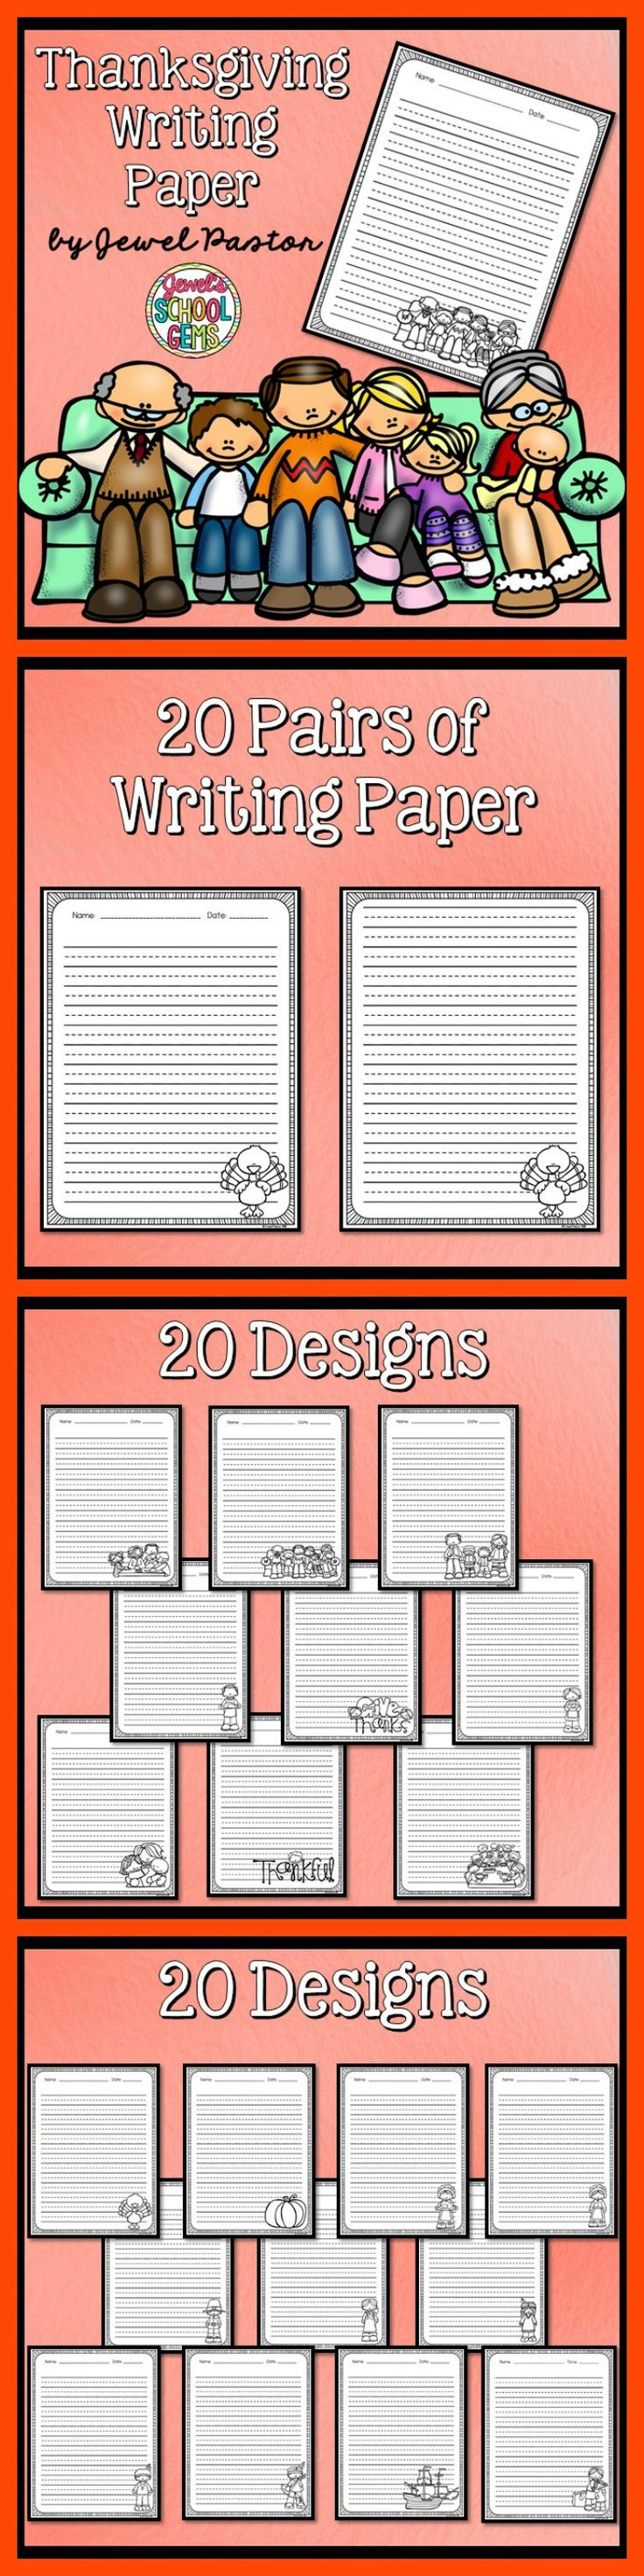 THANKSGIVING WRITING PAPER   This resource contains a PDF file composed of 20 pairs of writing paper/sheets with a thanksgiving theme for a total of 40 sheets.  Please see the Preview to get an idea of what the print-and-go sheets look like. All the sheets are in black and white.